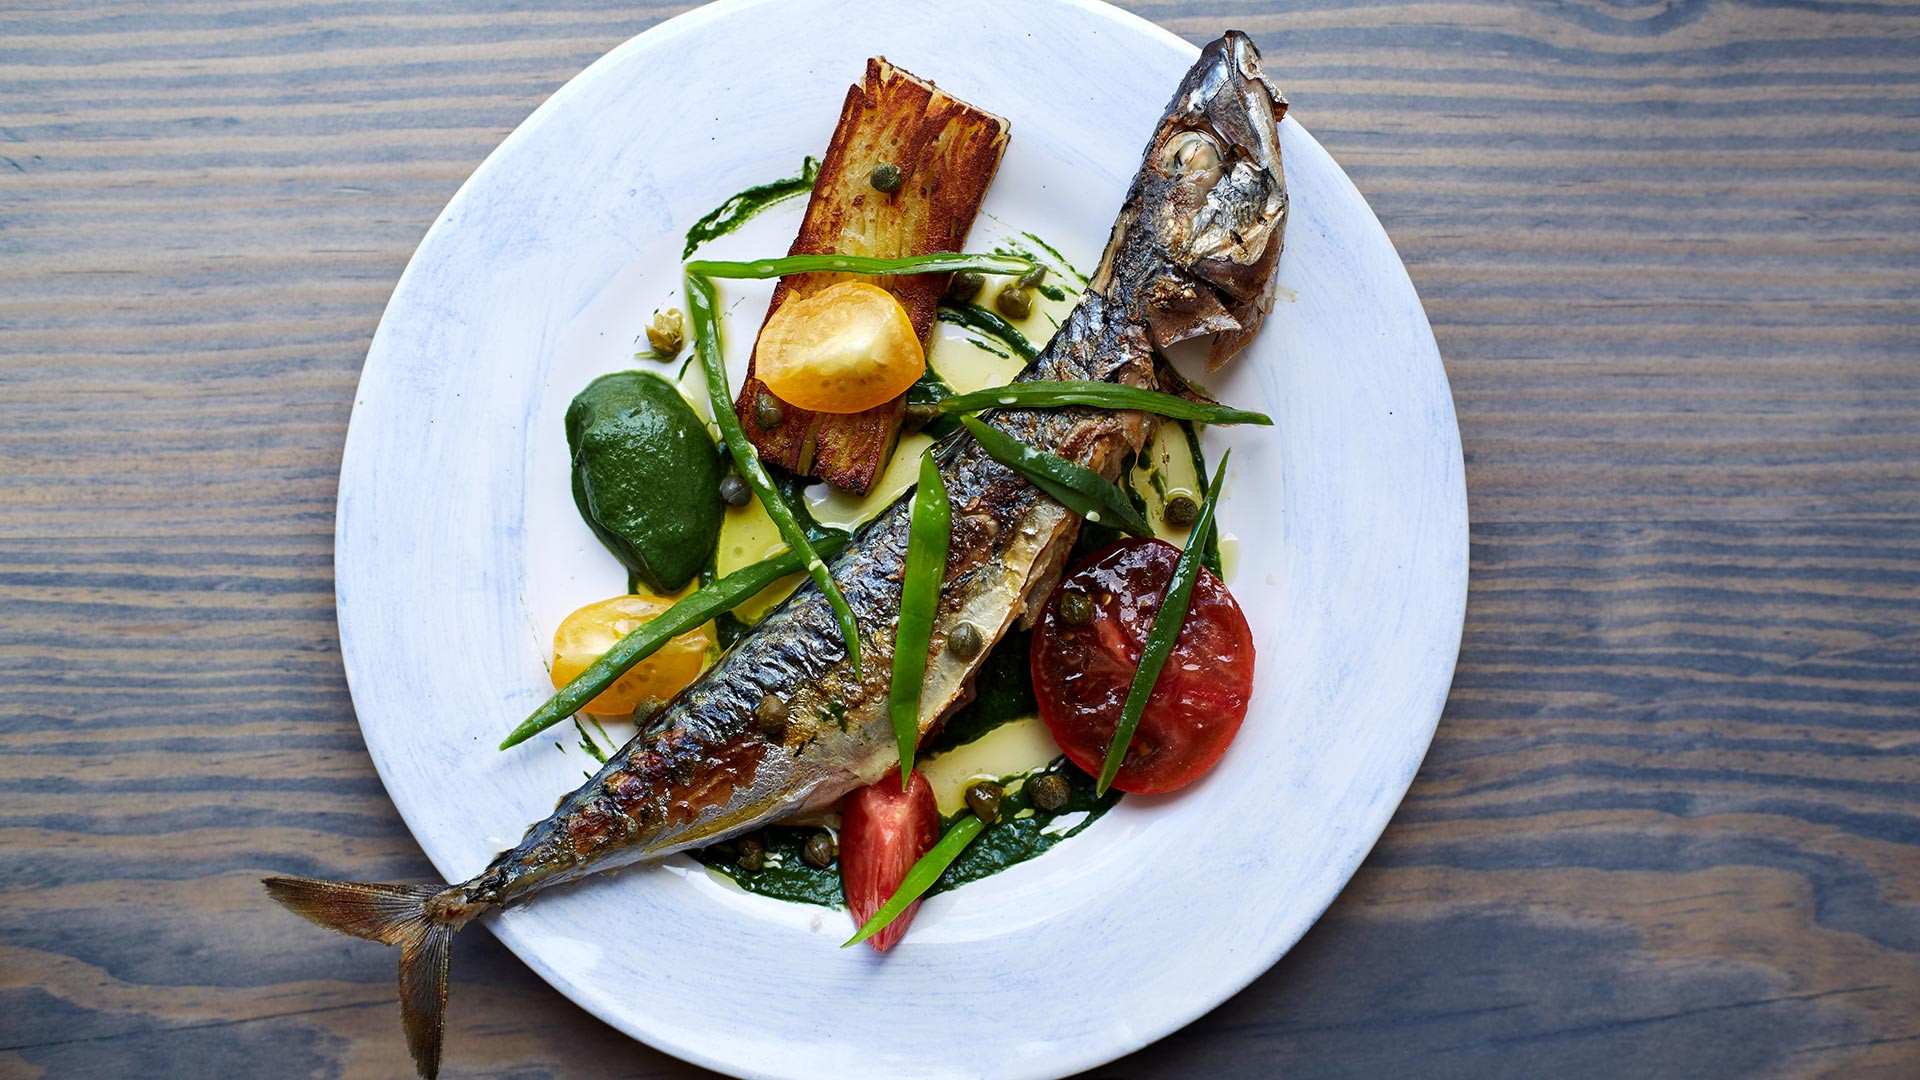 Whole mackerel with potato cakes and confit tomatoes